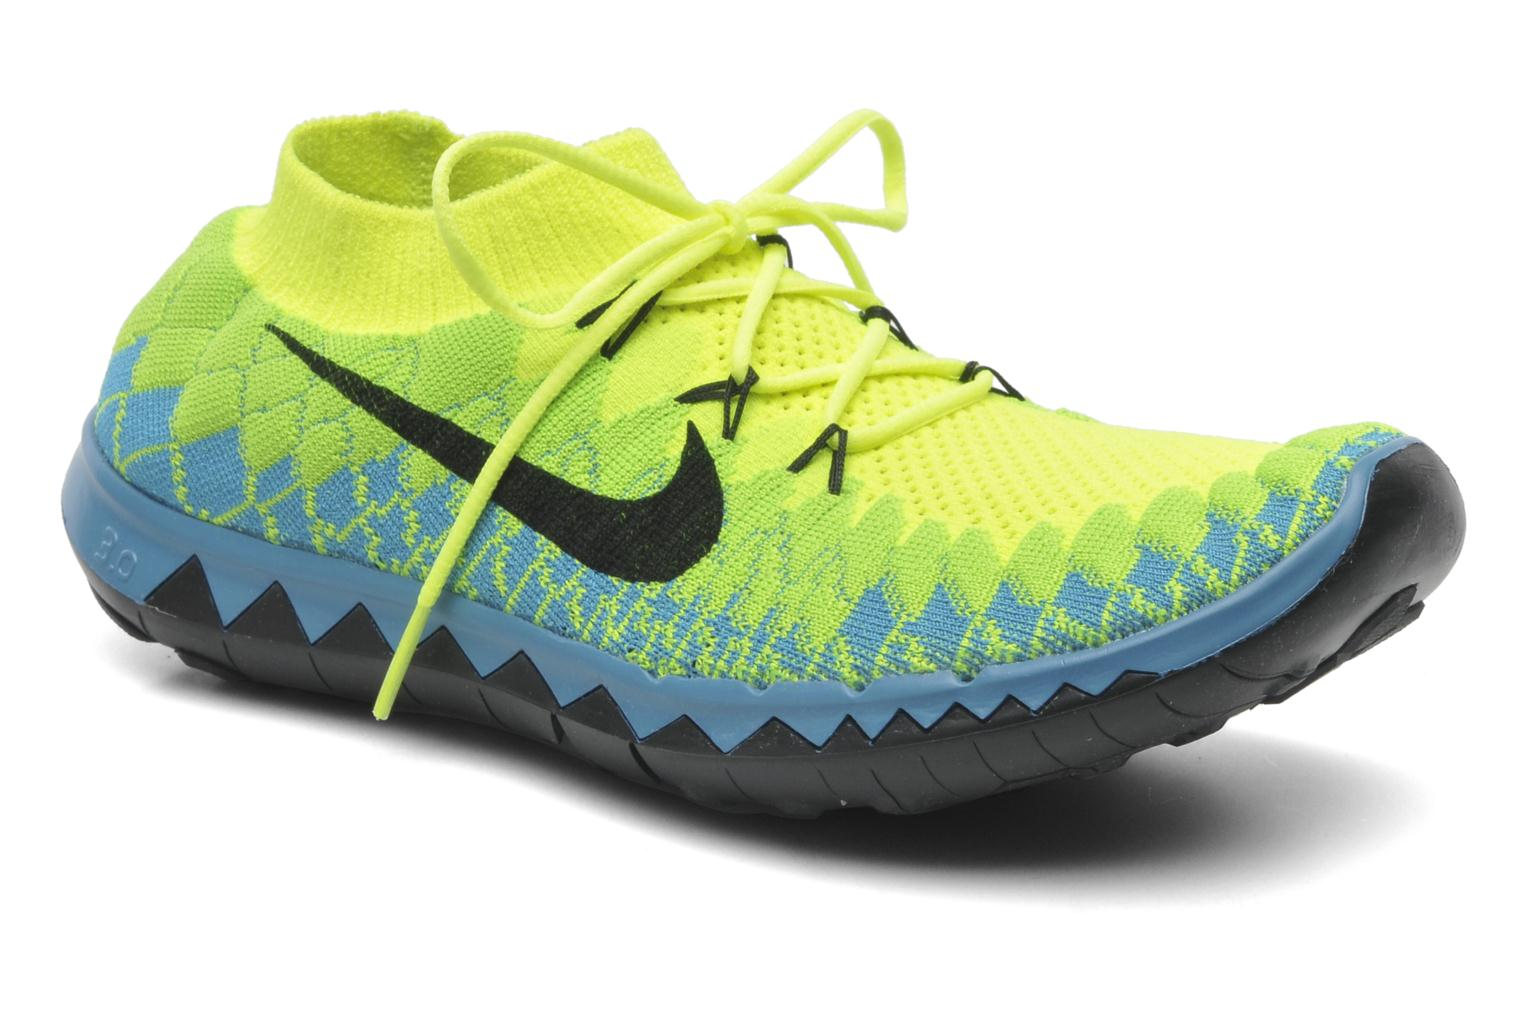 reputable site 74d09 6174f ... Sport shoes Nike Nike Free 3.0 Flyknit Yellow detailed view Pair view  ...